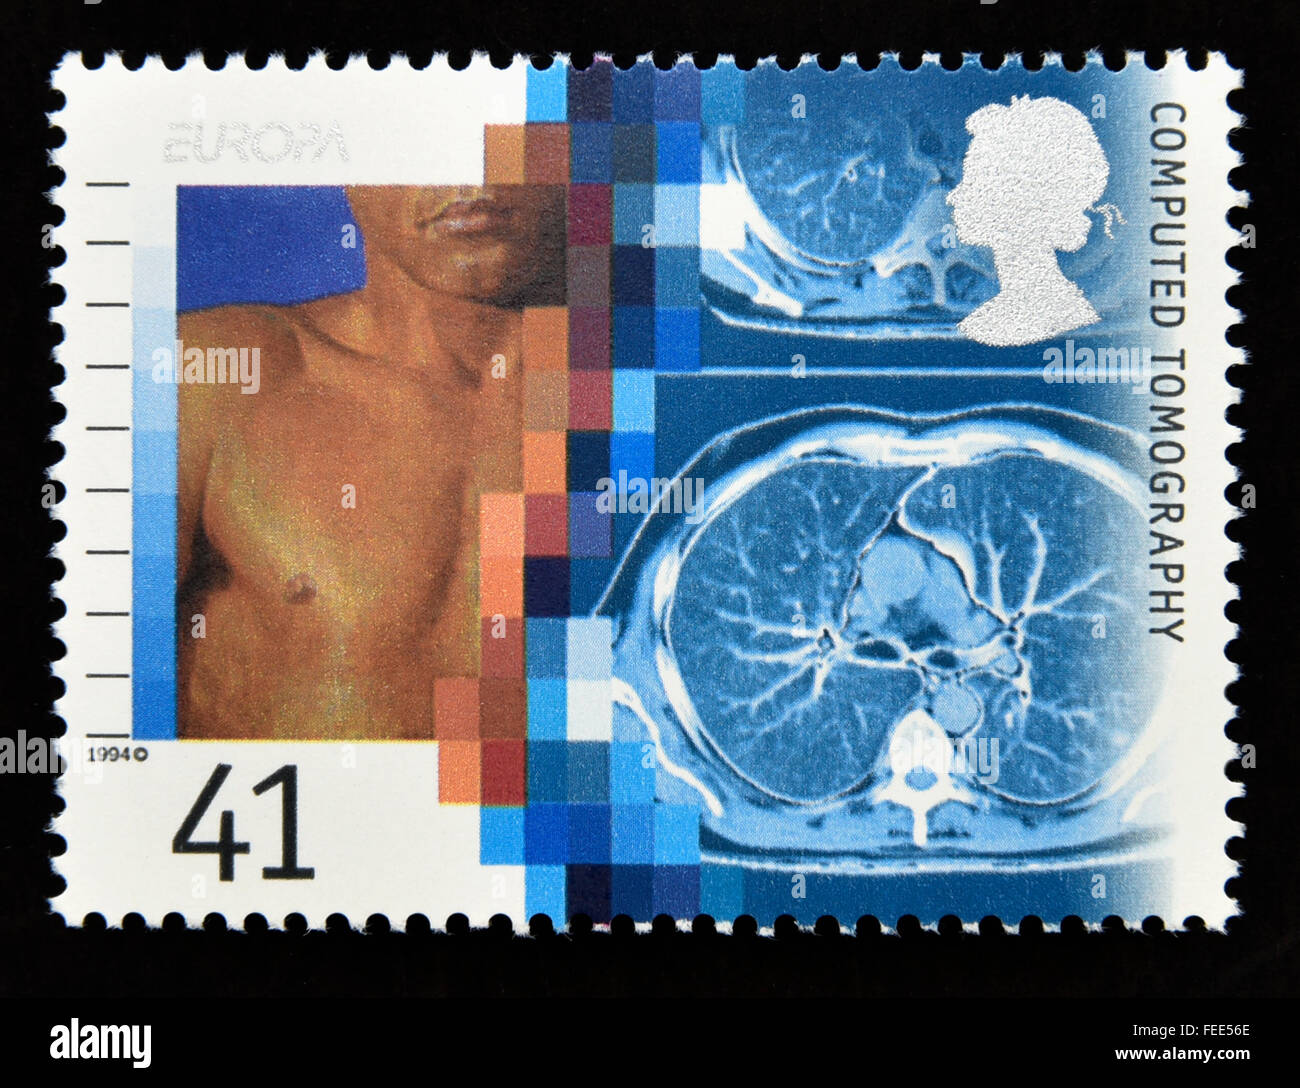 Postage stamp. Great Britain. Queen Elizabeth II. 1994. Europa. Medical Discoveries. Computed Tomography. 41p. - Stock Image